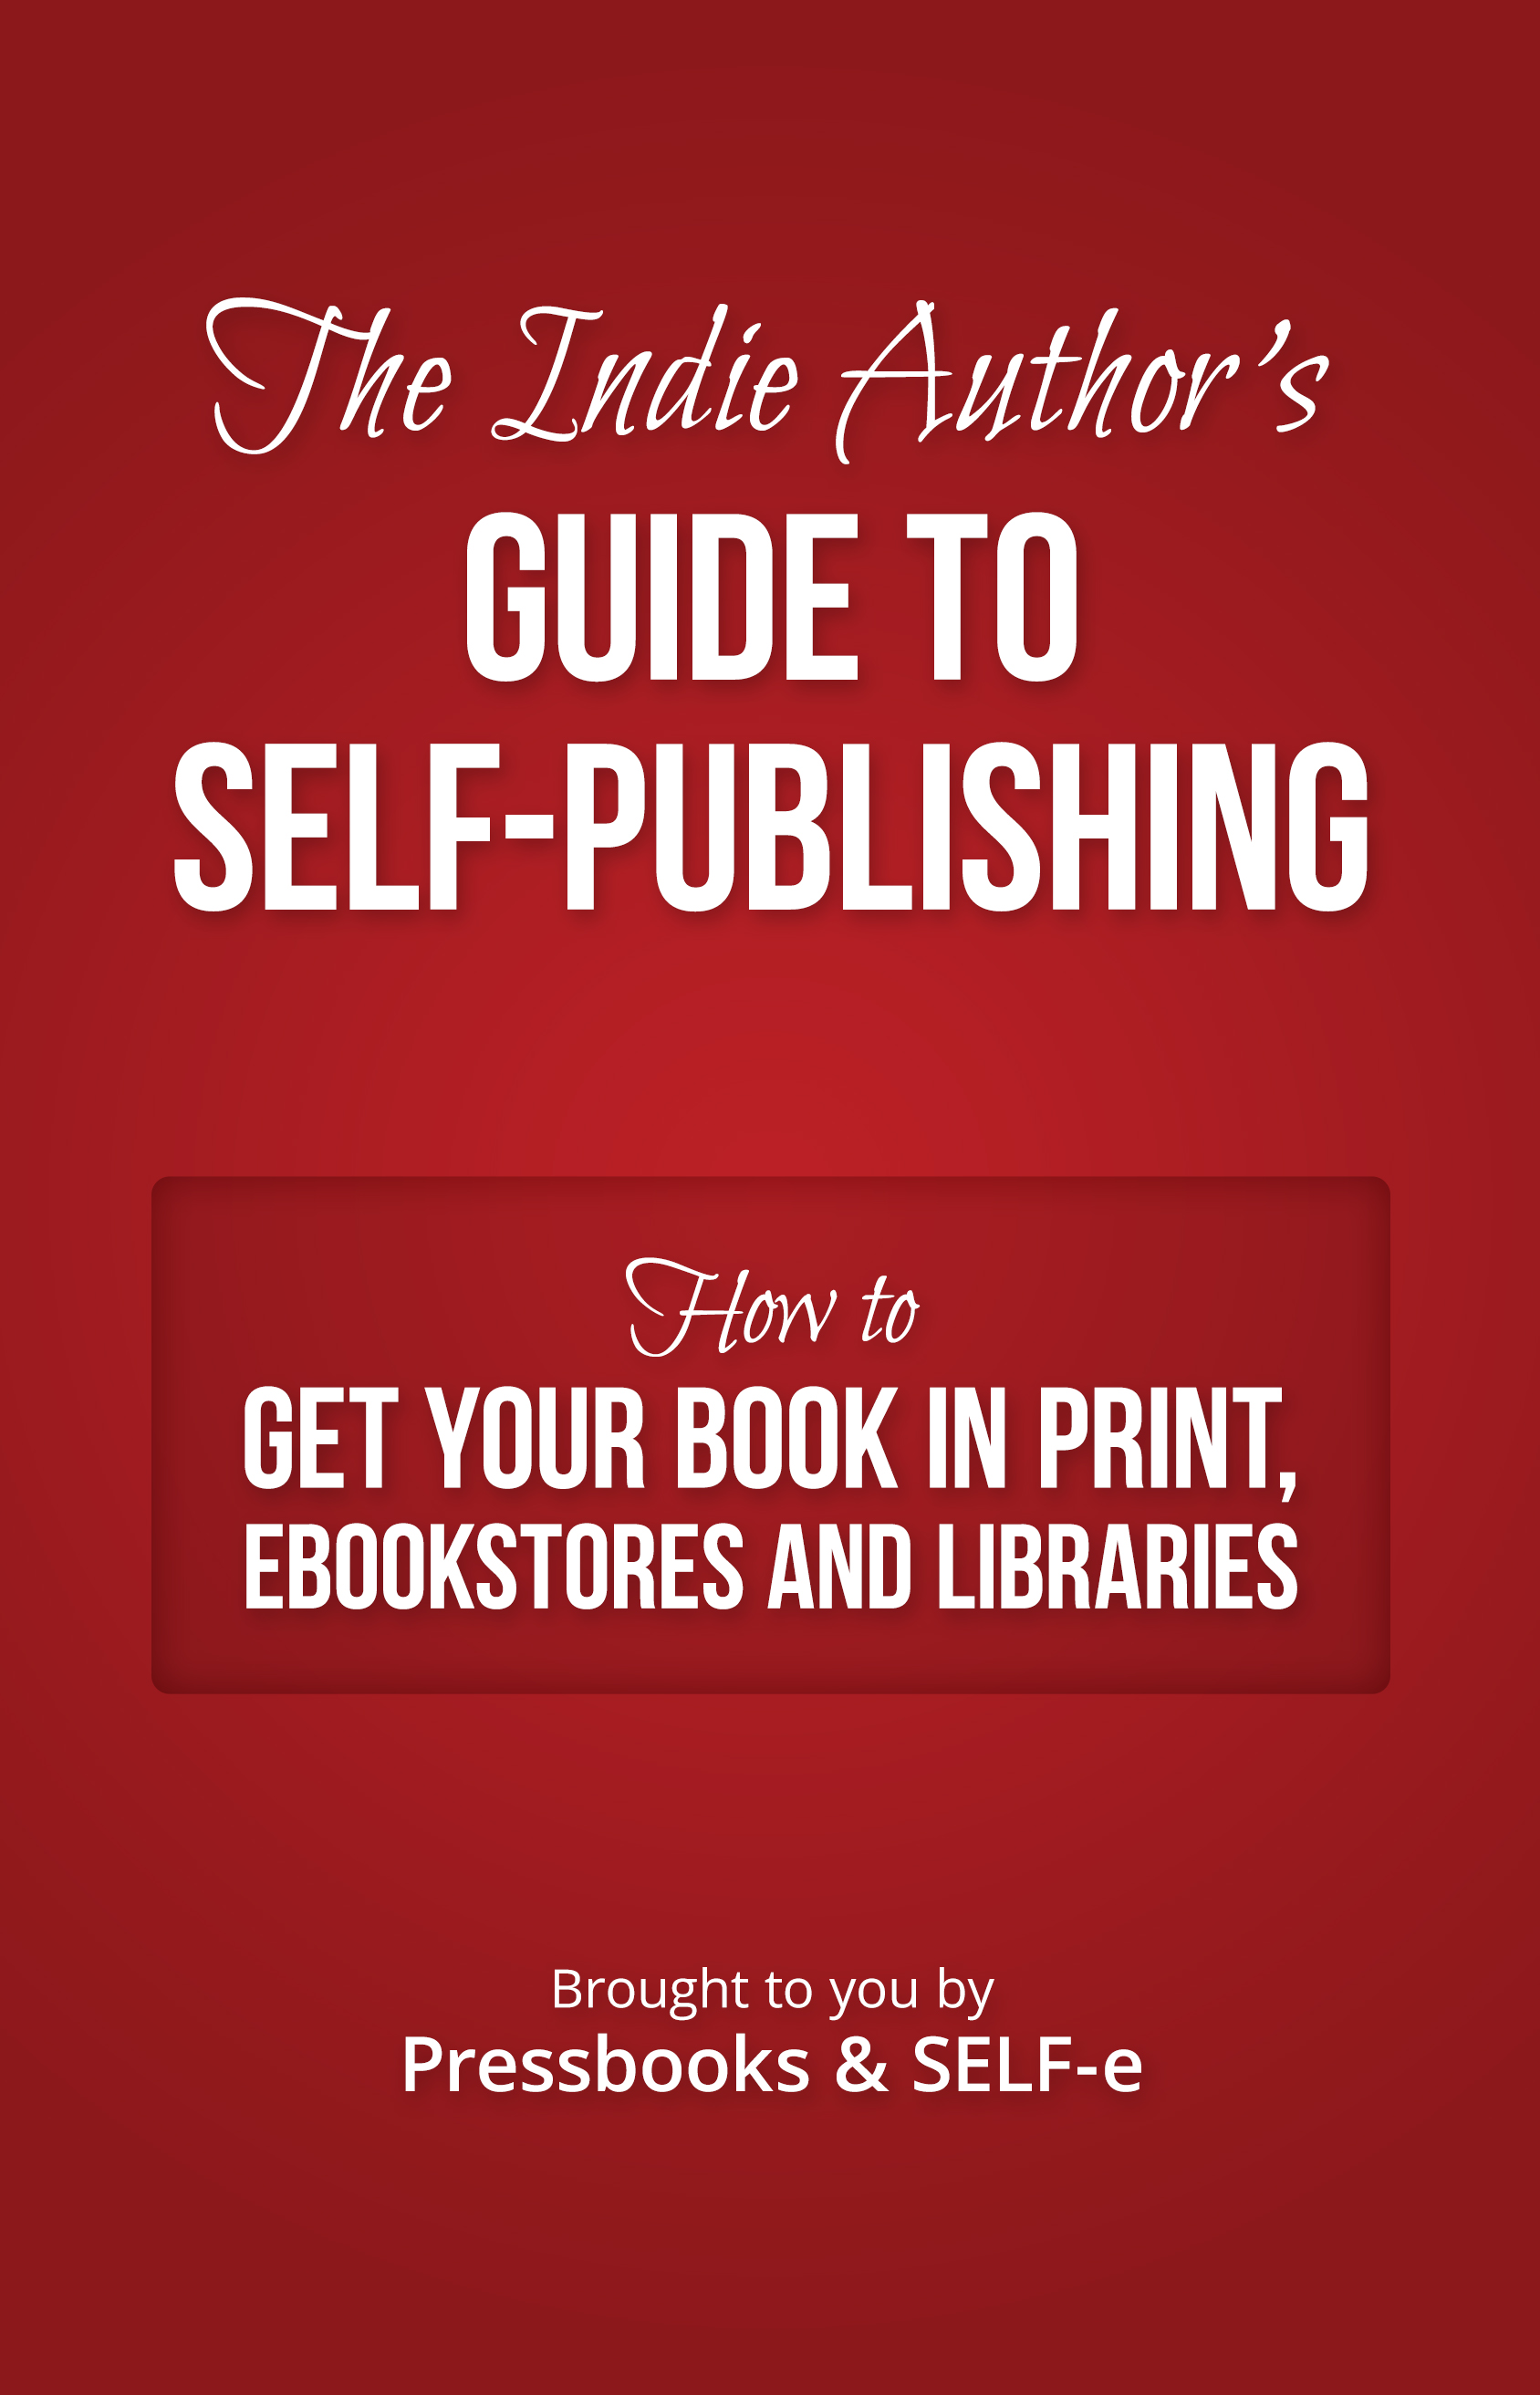 Cover image for The Indie Author's Guide to Self-Publishing